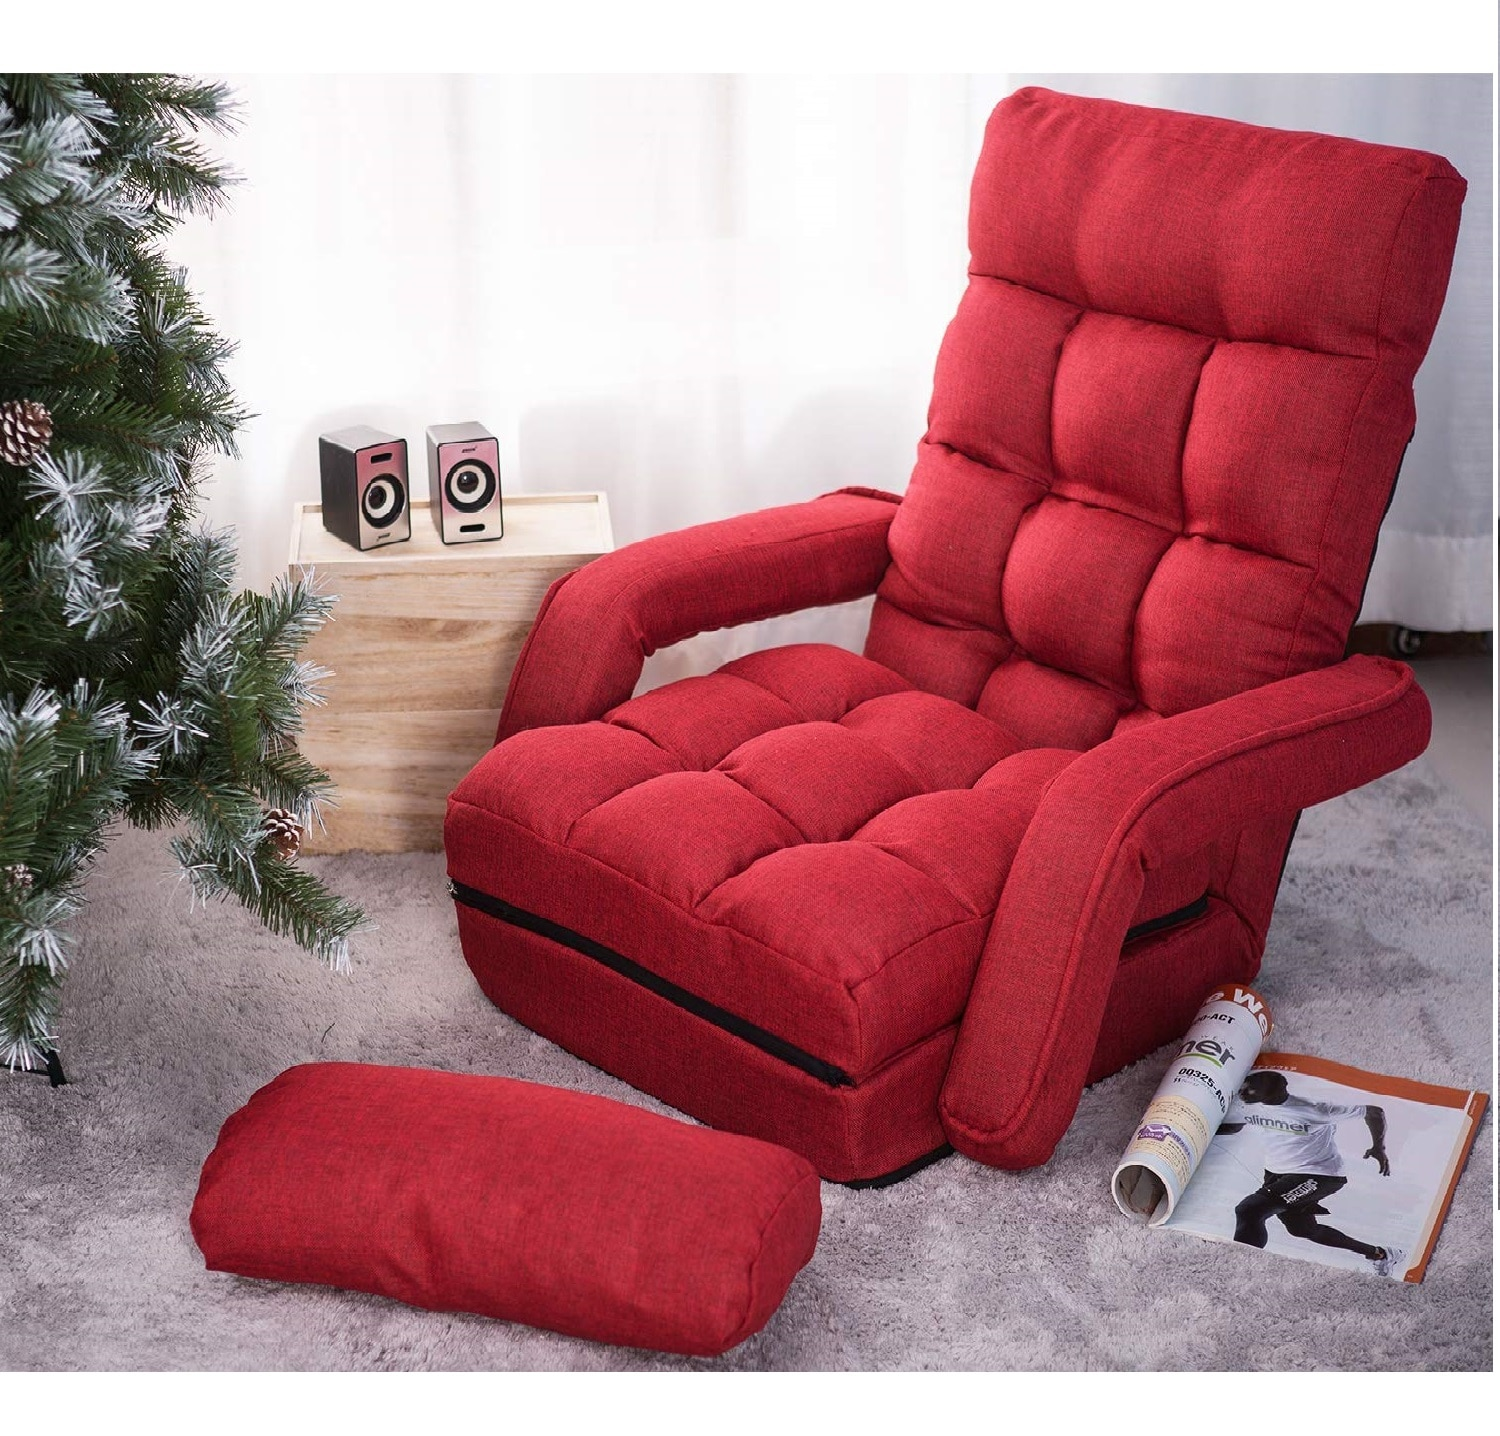 10.MOOSENG Folding Lazy Floor Chair Sofa Lounger Bed with Armrests, Red(Pillow)